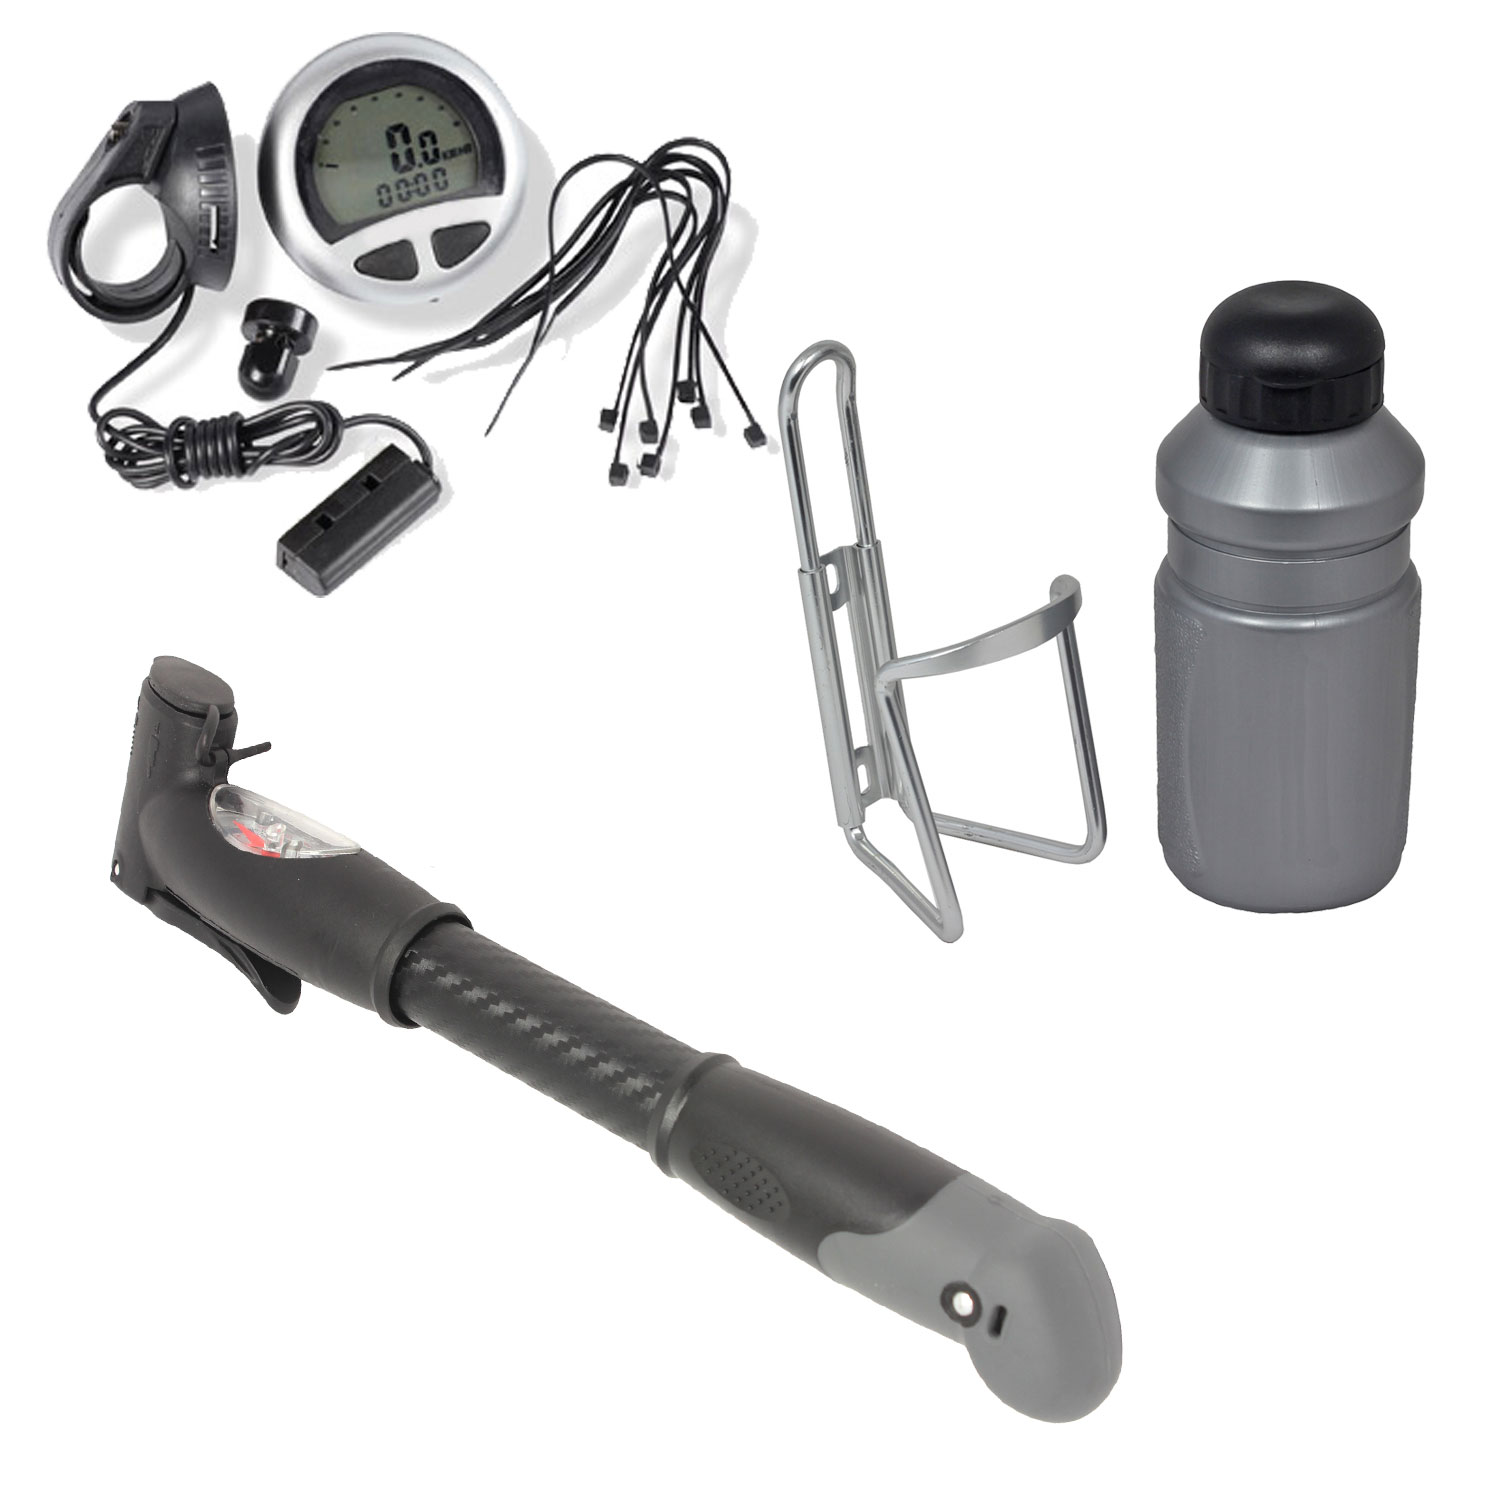 New Cycle Accessory Kit Pump Computer Bottle Drink Holder Cage Bike Bicycle Set Enlarged Preview